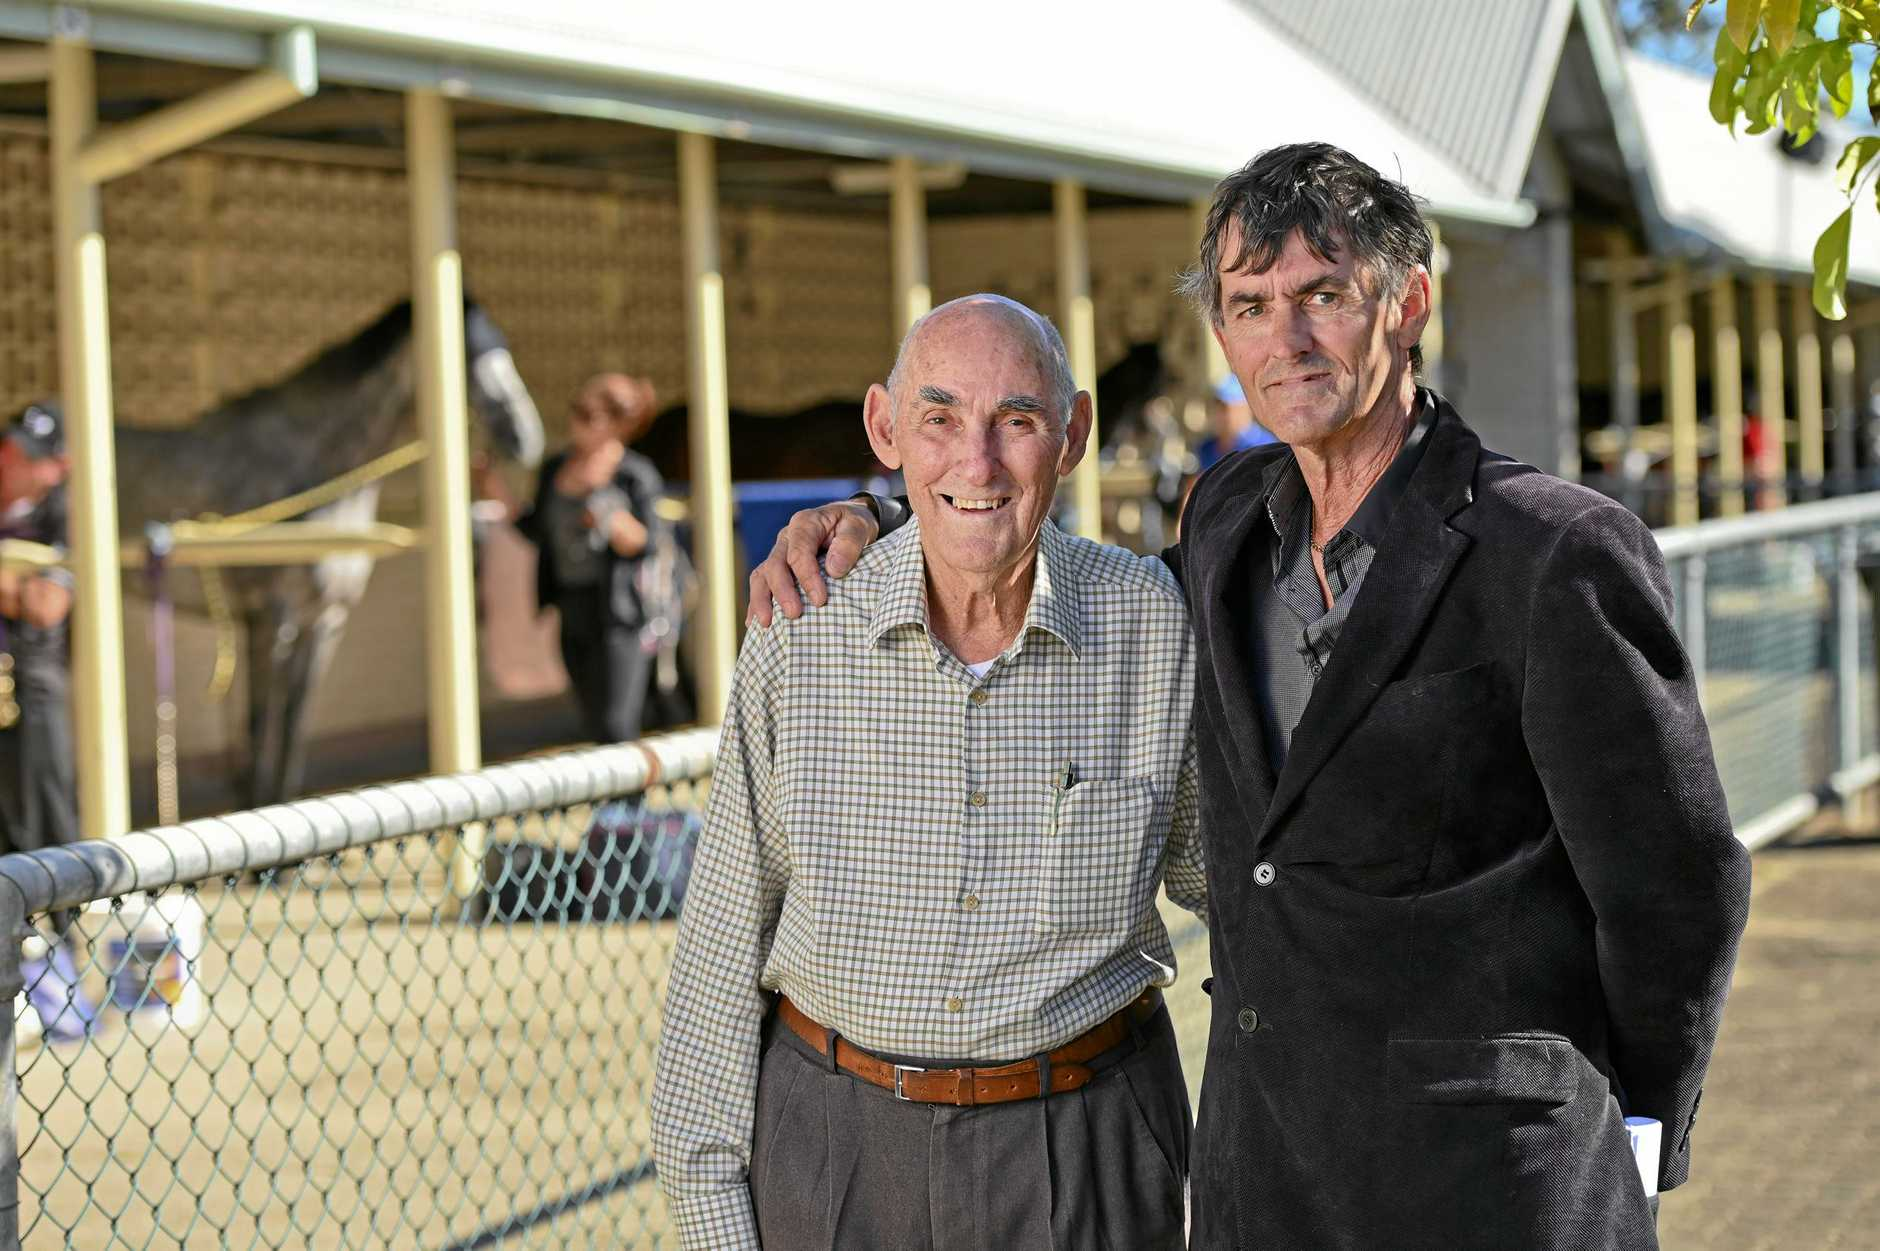 Ipswich Turf Club father and son George and David Sawyers. David is taking over as jockey room attendant from retiring dad George.